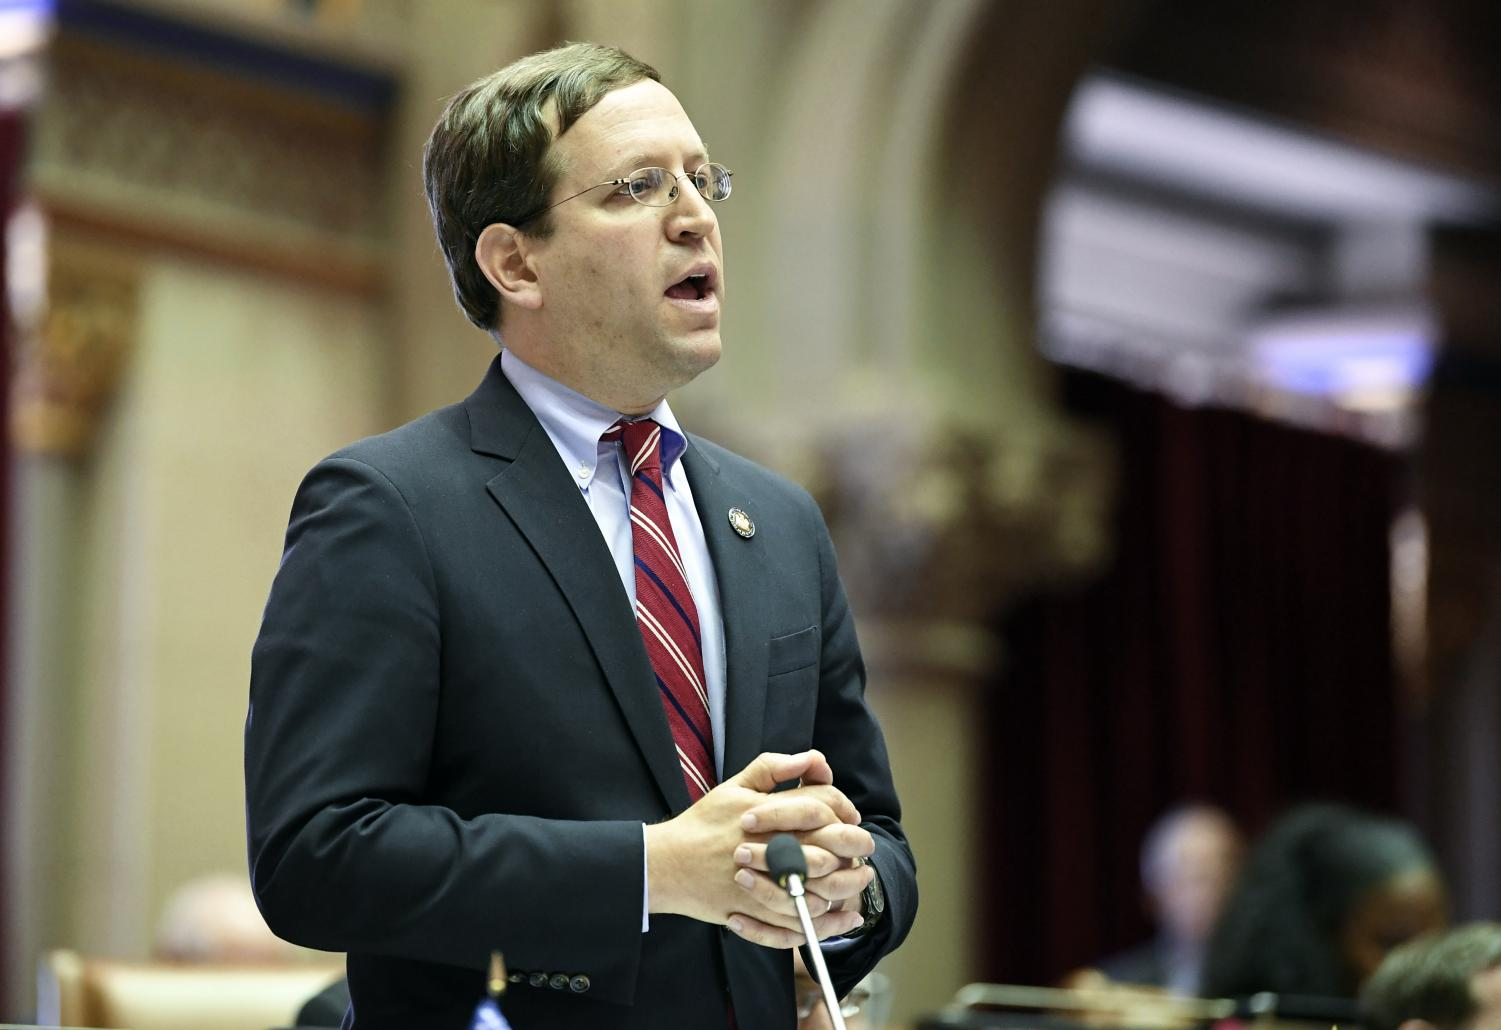 David Buchwald, D-Westchester, speaks to members of the New York state Assembly in favor of legislation that authorizes state tax officials to release, if requested, individual New York state tax returns to Congress, during a vote in the Assembly Chamber at the state Capitol Wednesday, May 22, 2019, in Albany, N.Y.